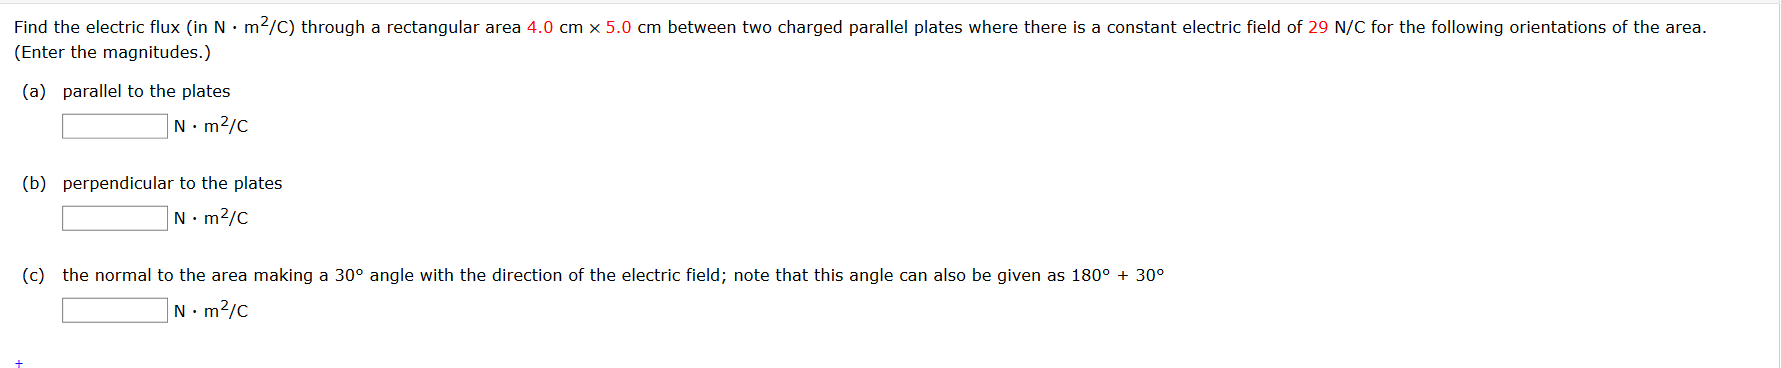 Find the electric flux (in N·m²/C) through a rectangular area 4.0 cm x 5.0 cm between two charged parallel plates where there